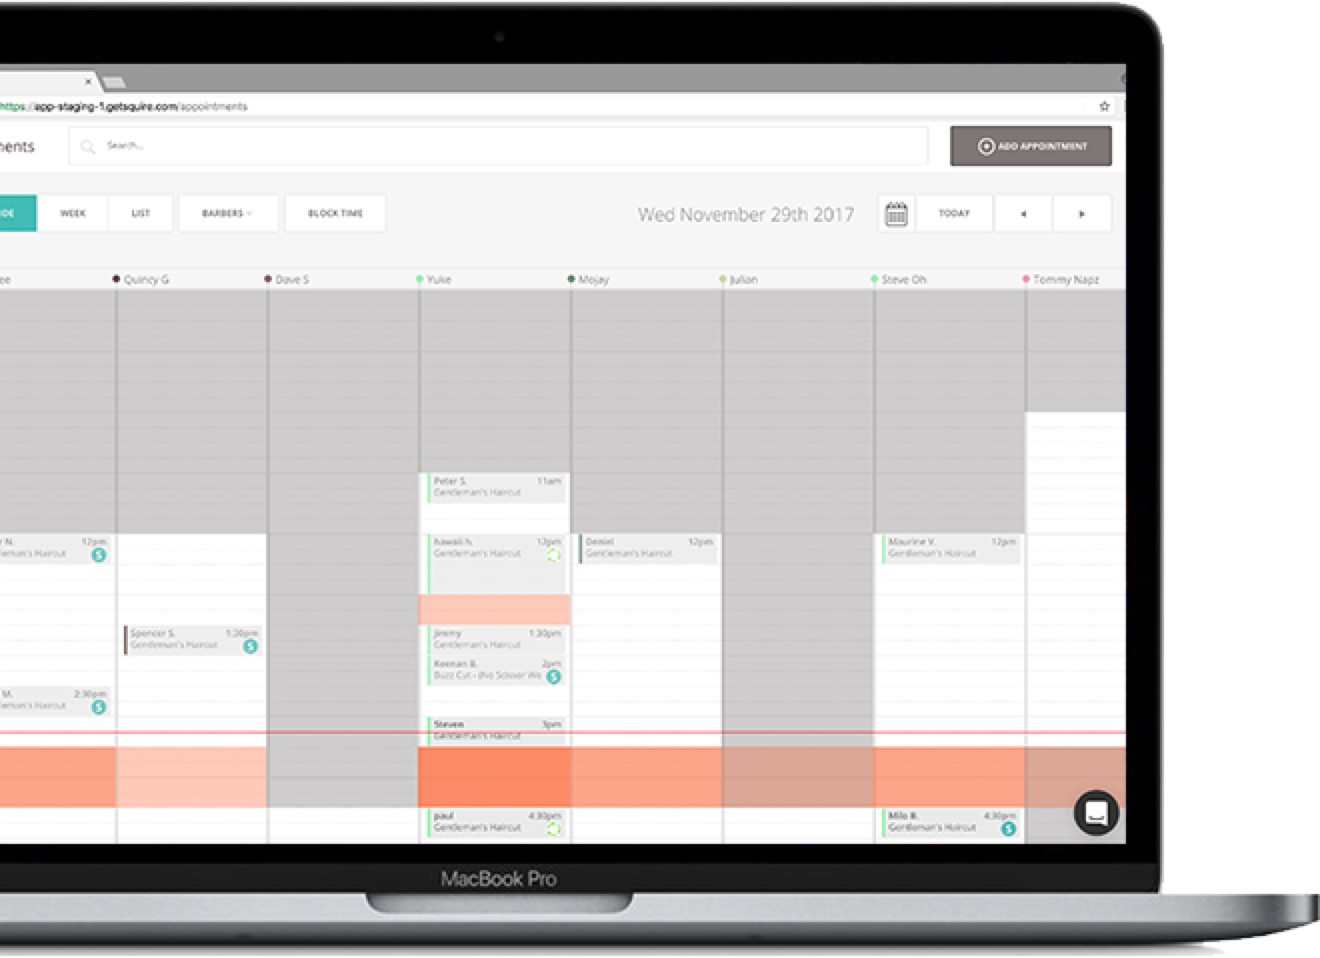 Control staff schedules and manage multiple locations from desktop or tablet